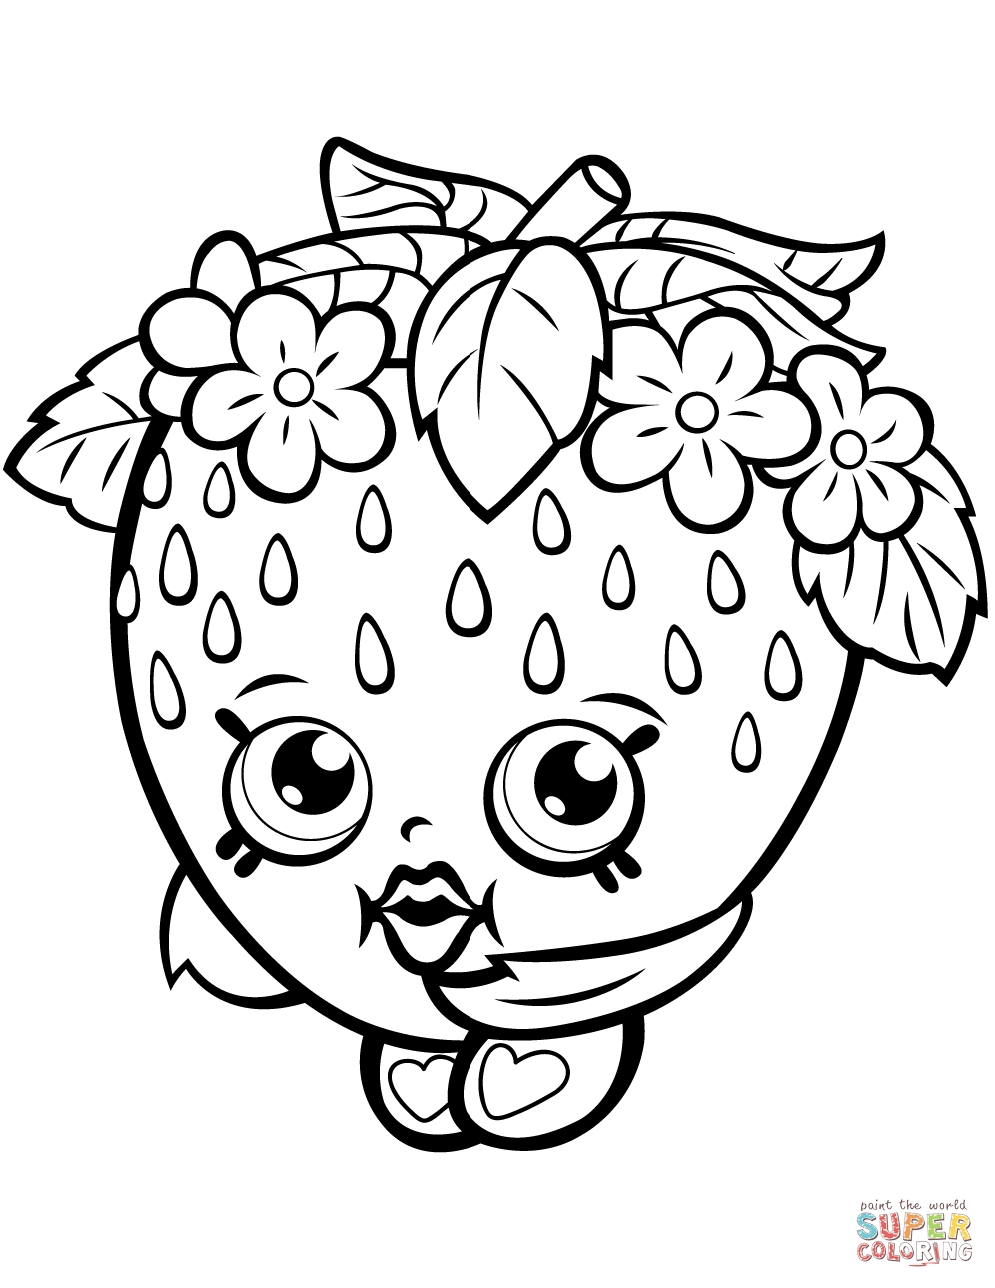 995x1288 Apple Blossom Coloring Page Shopkins Free